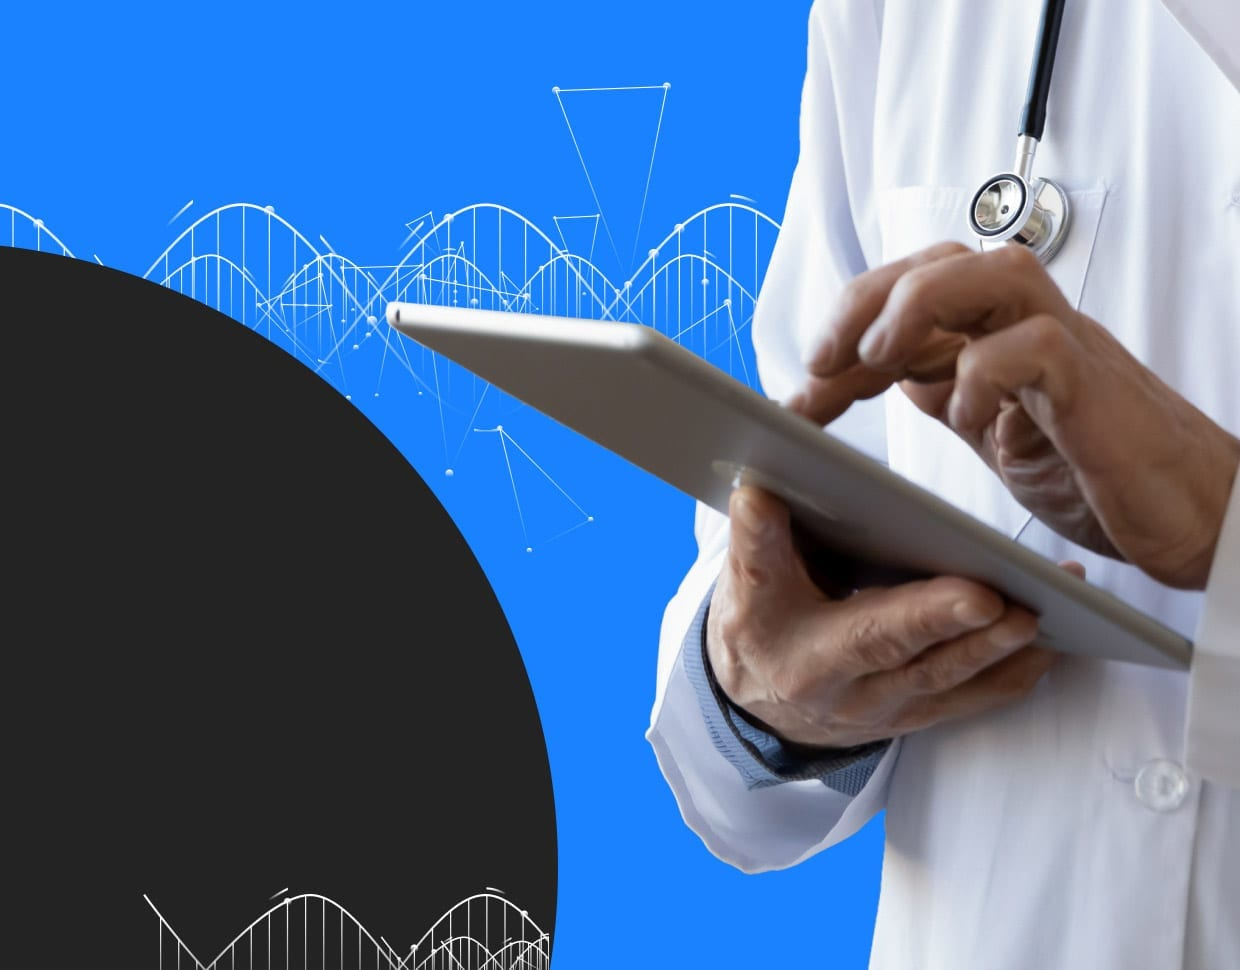 Digital health strategies unlocked: drive new value from the connected healthcare ecosystem